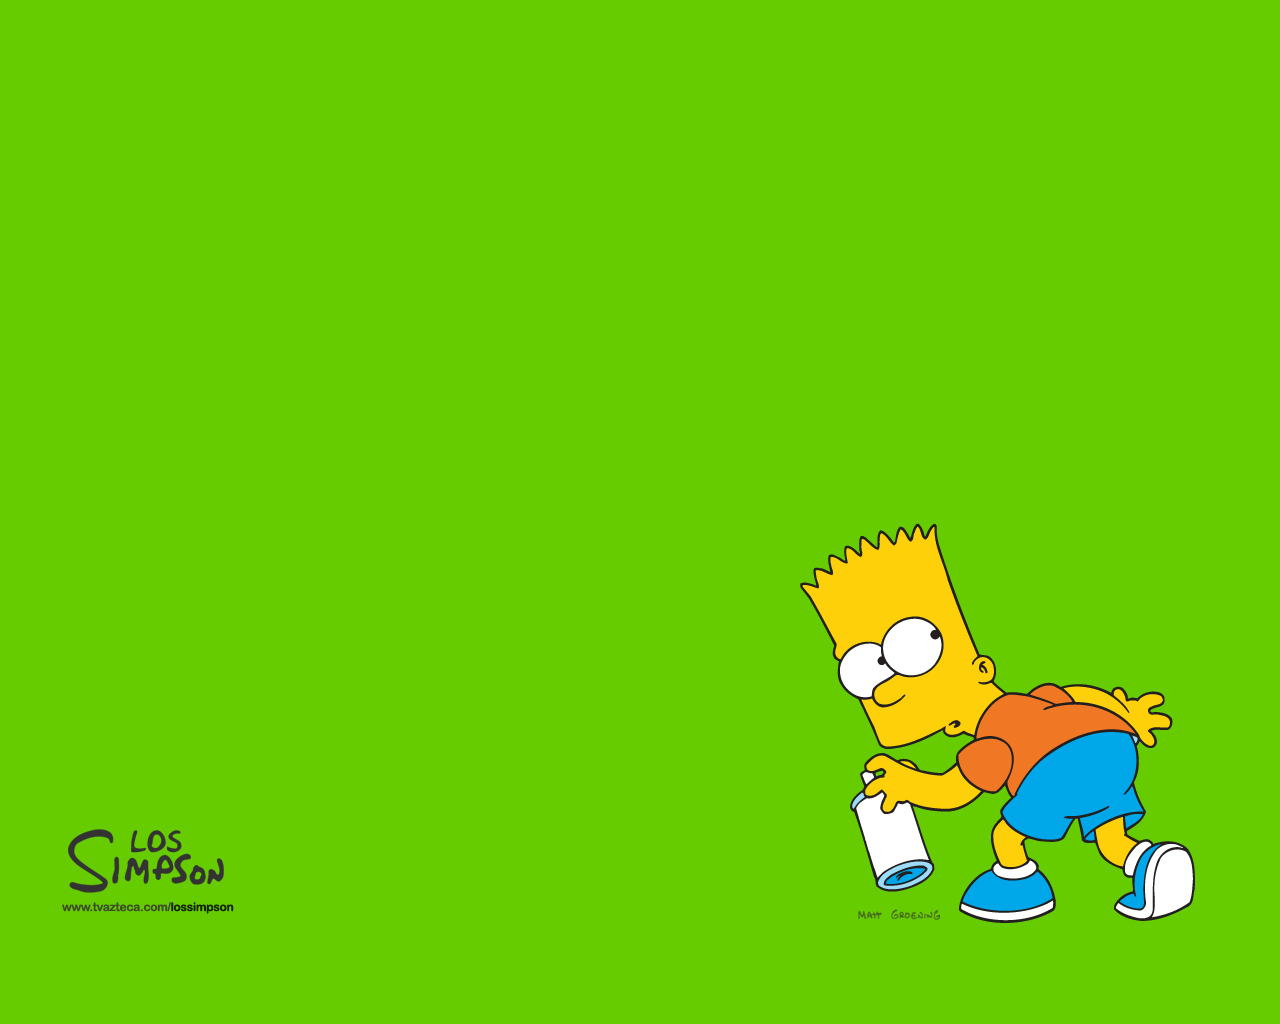 Download wallpaper Bart Simpson Simpsons wallpapers wallpapers for 1280x1024